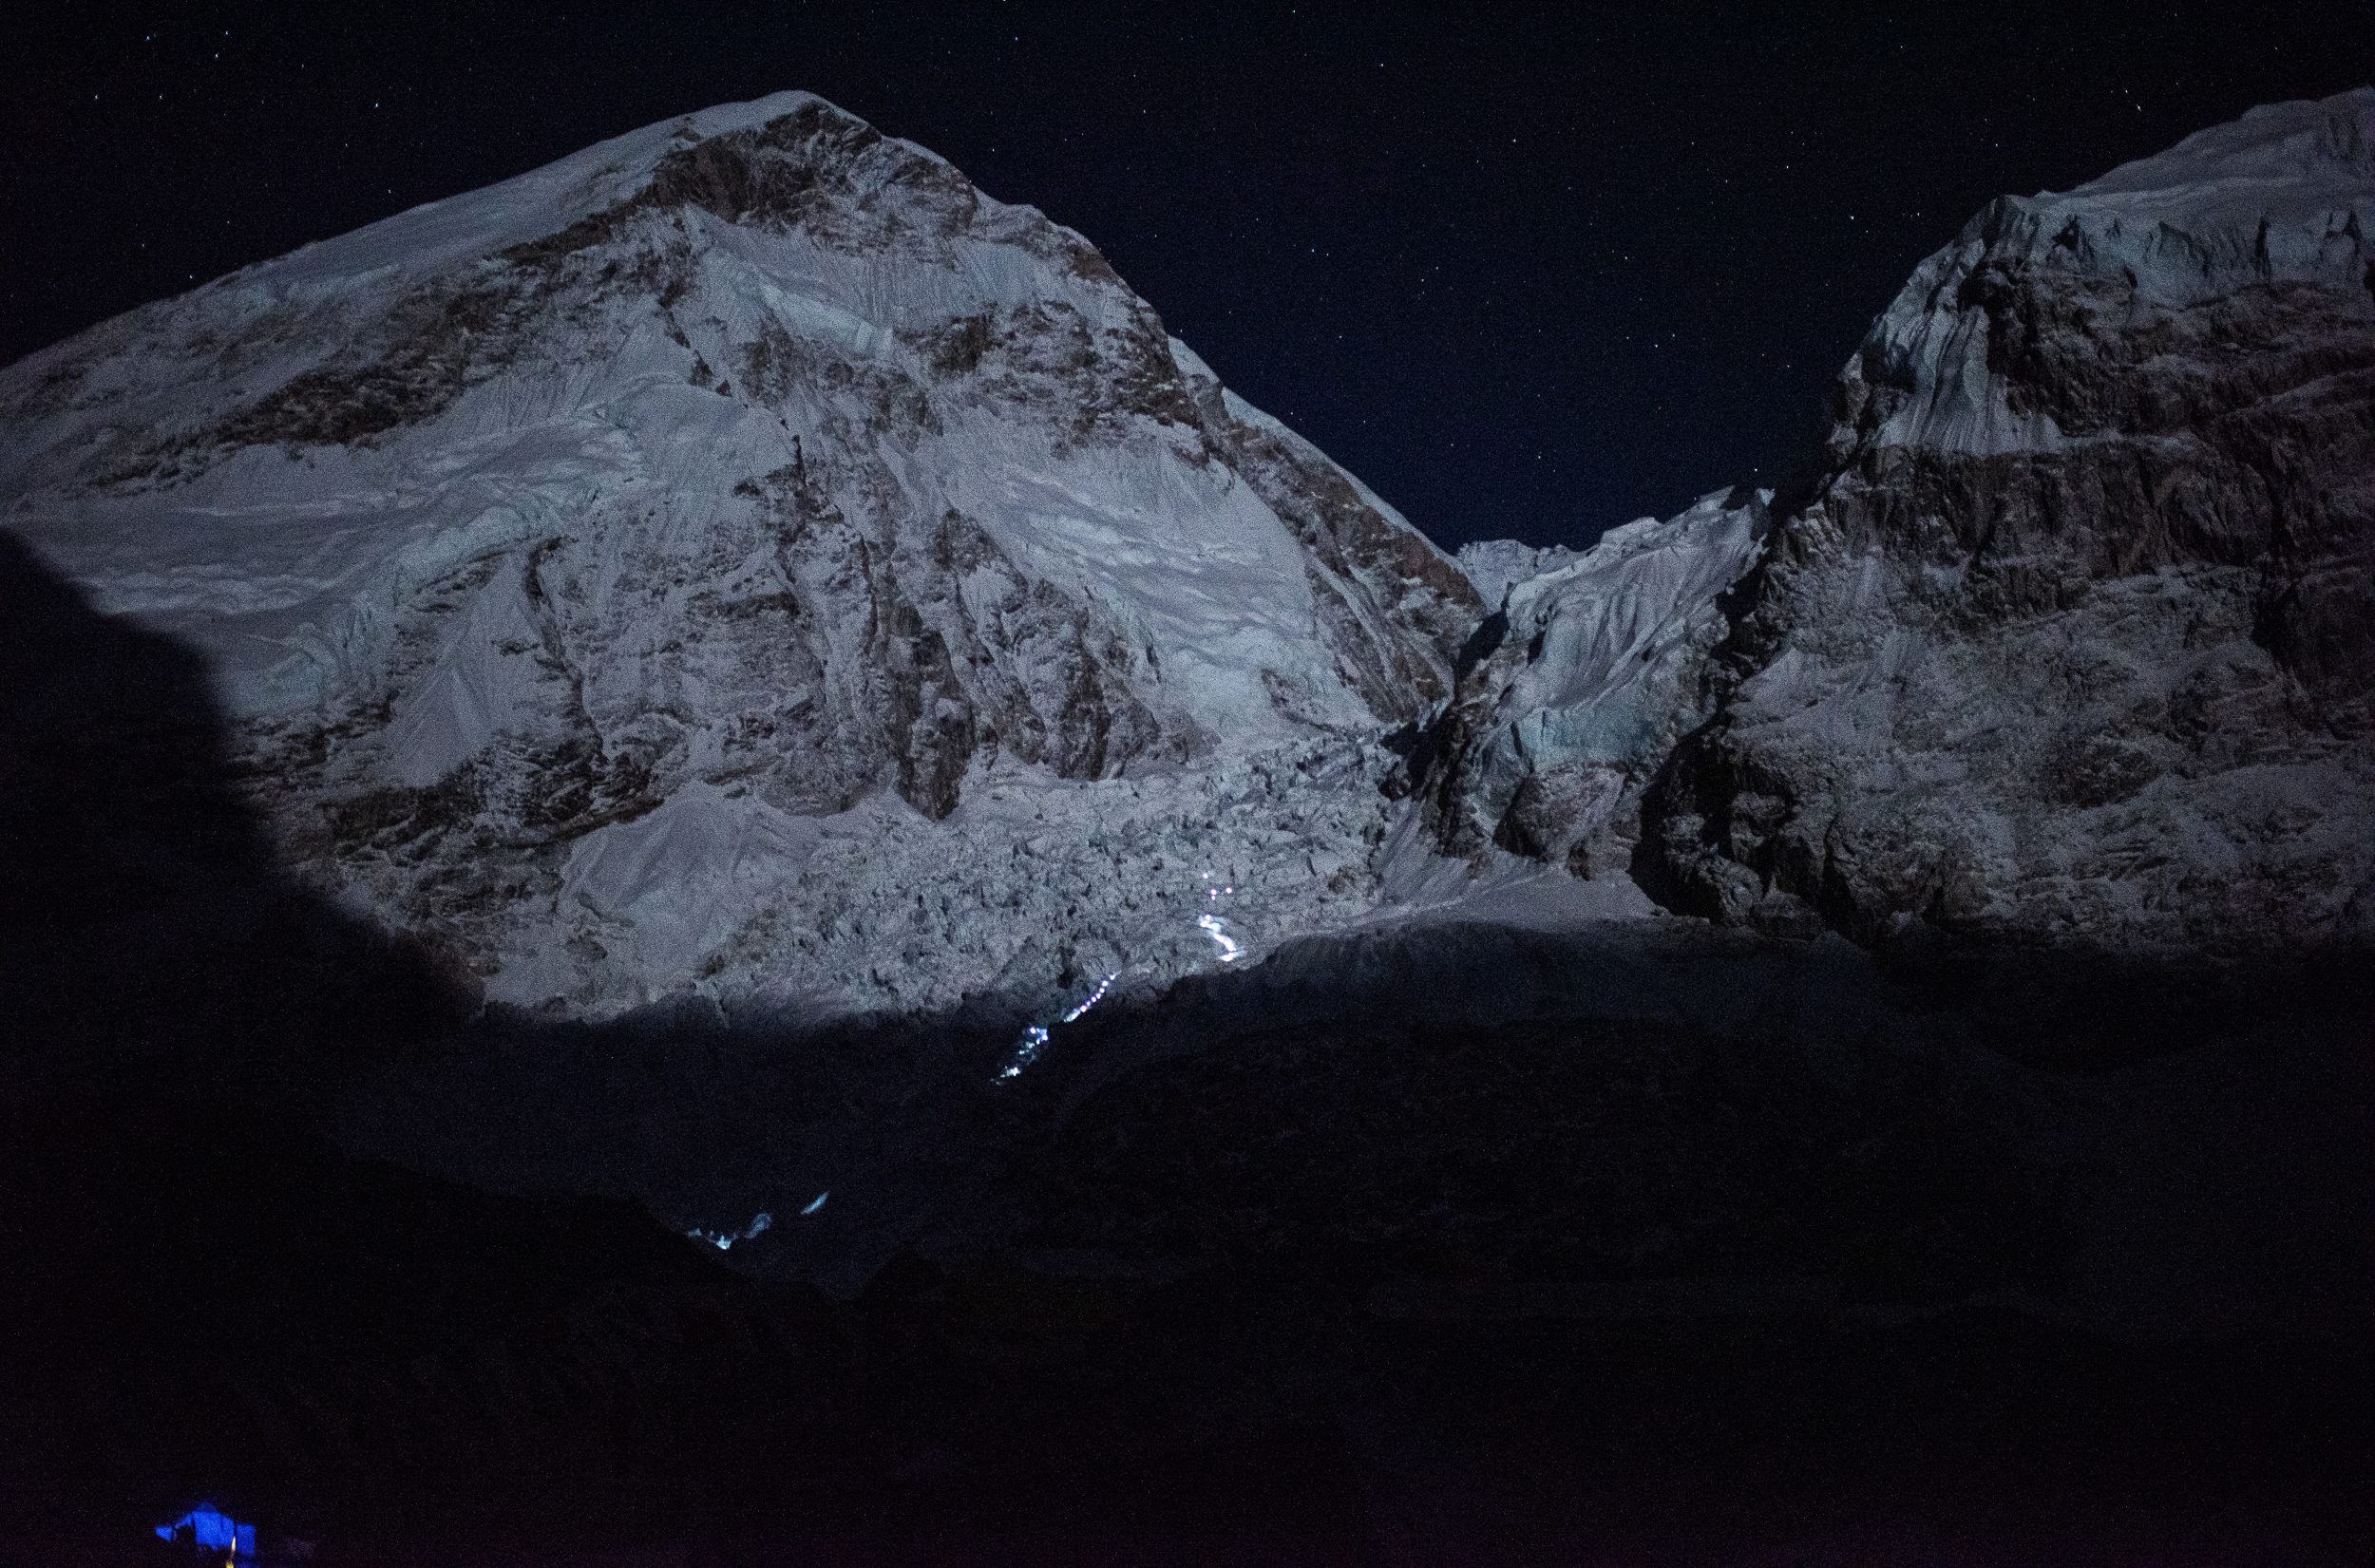 Nepal_EverestBaseCamp_2019_TaraShupe_Photography_DSC_4347.jpg